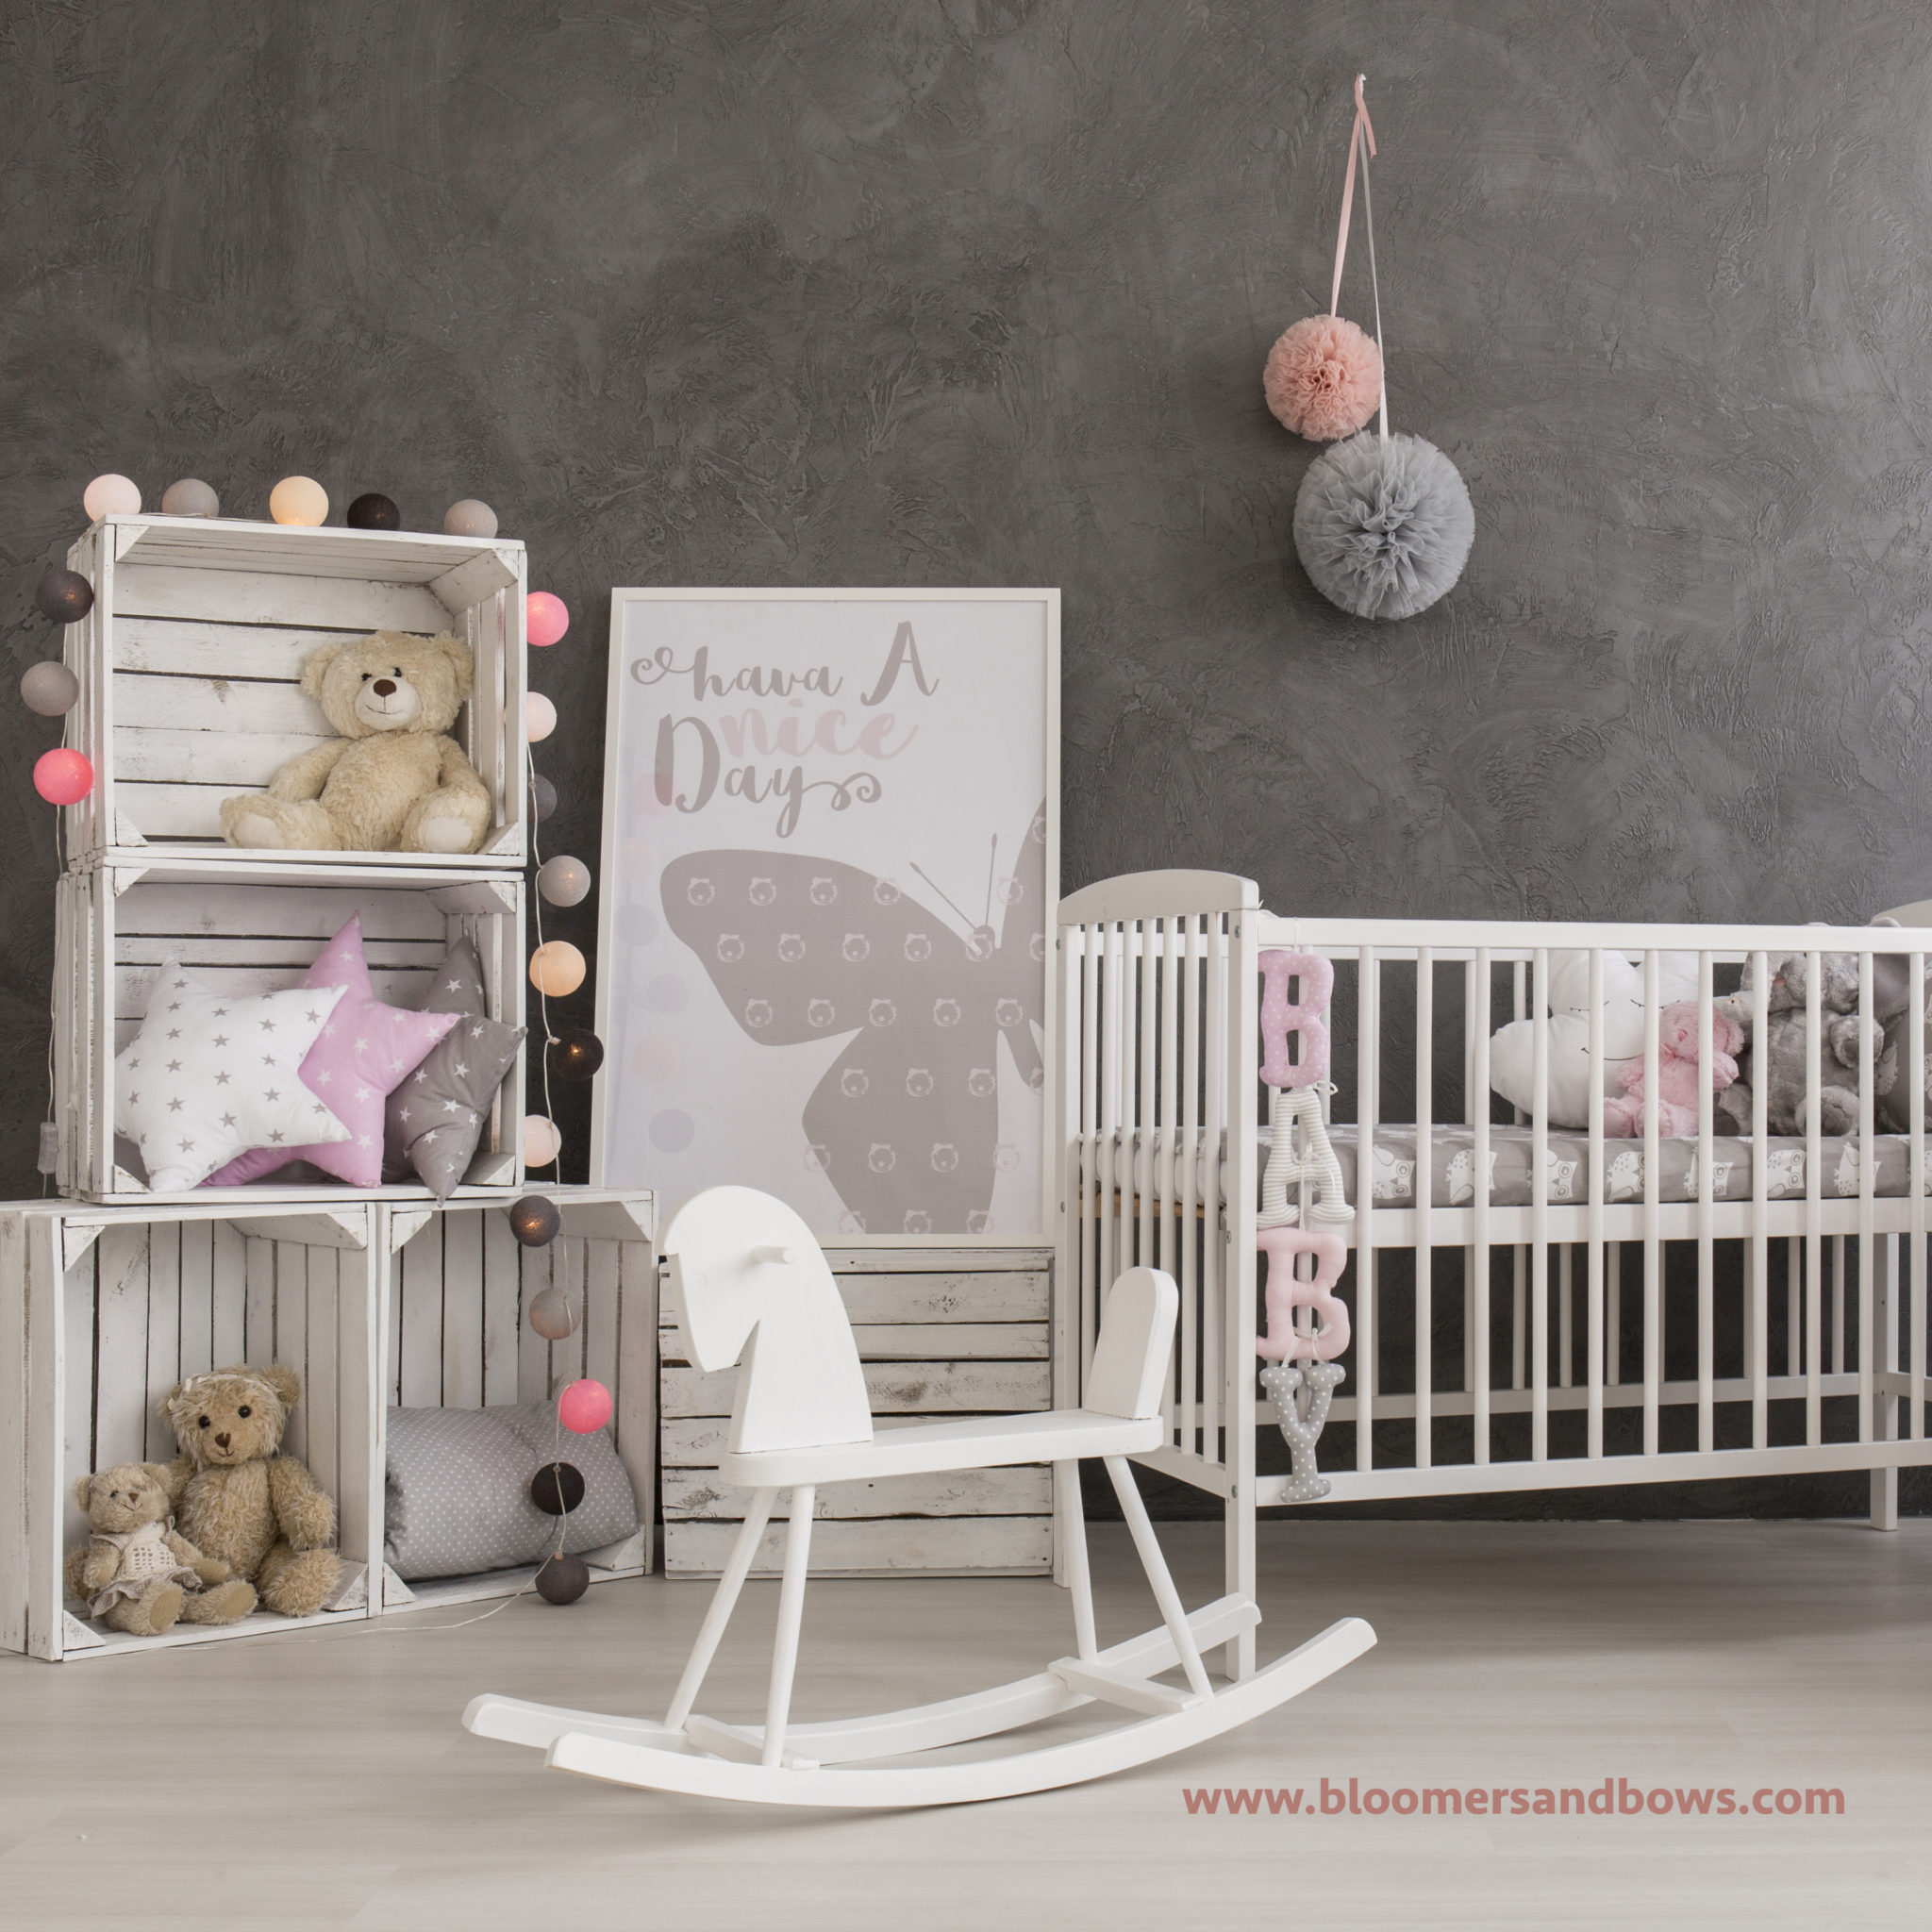 Beautiful & Classic: Gray, White & Pink Nursery Inspiration